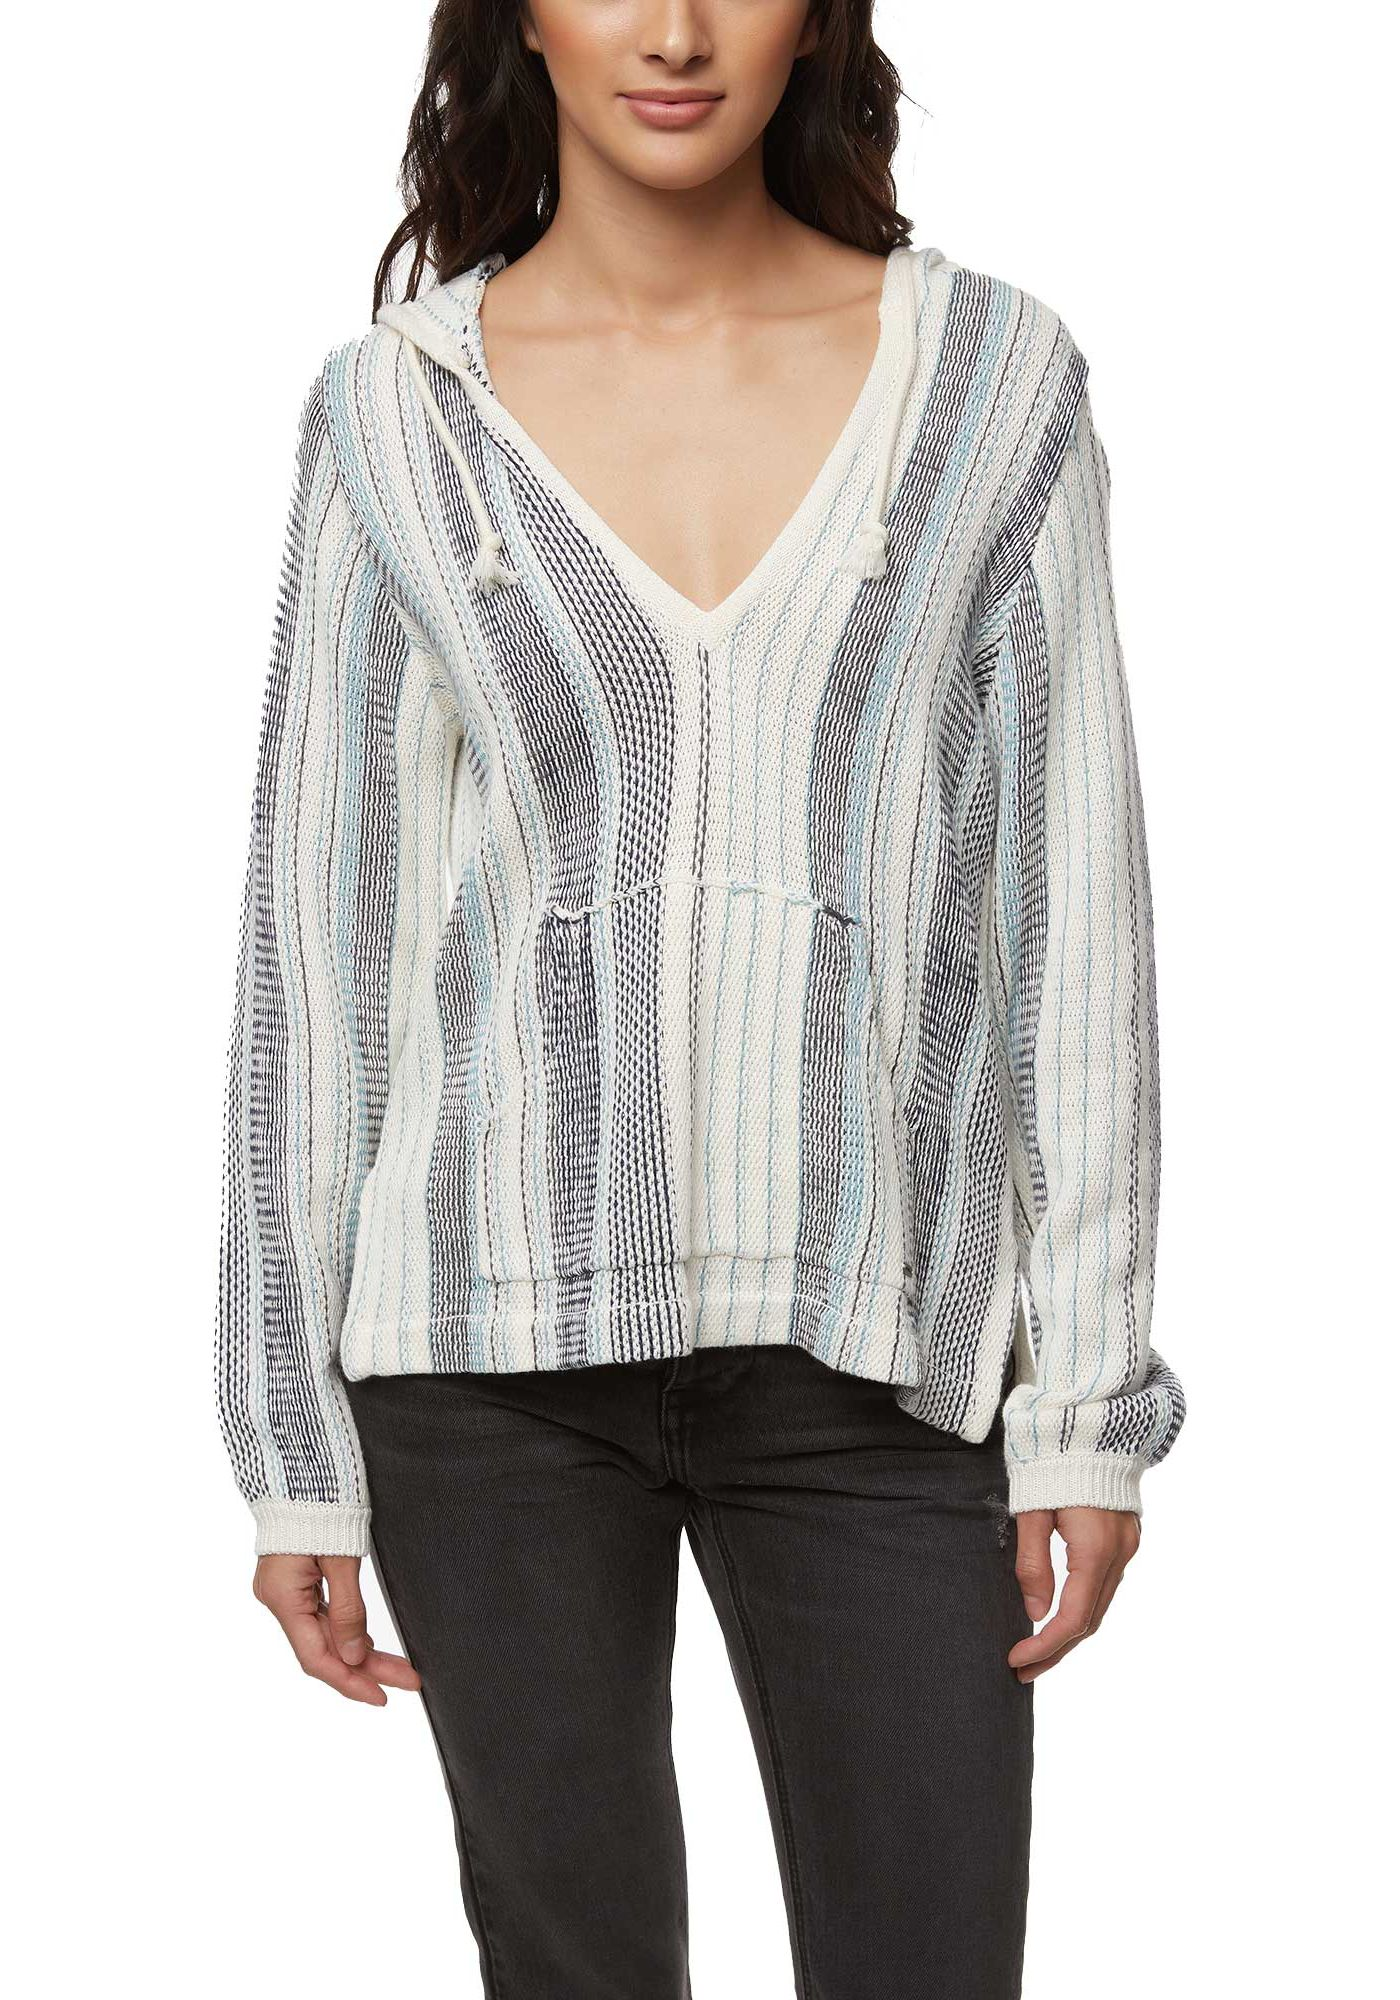 O'Neill Women's Bonfire Pullover Sweater